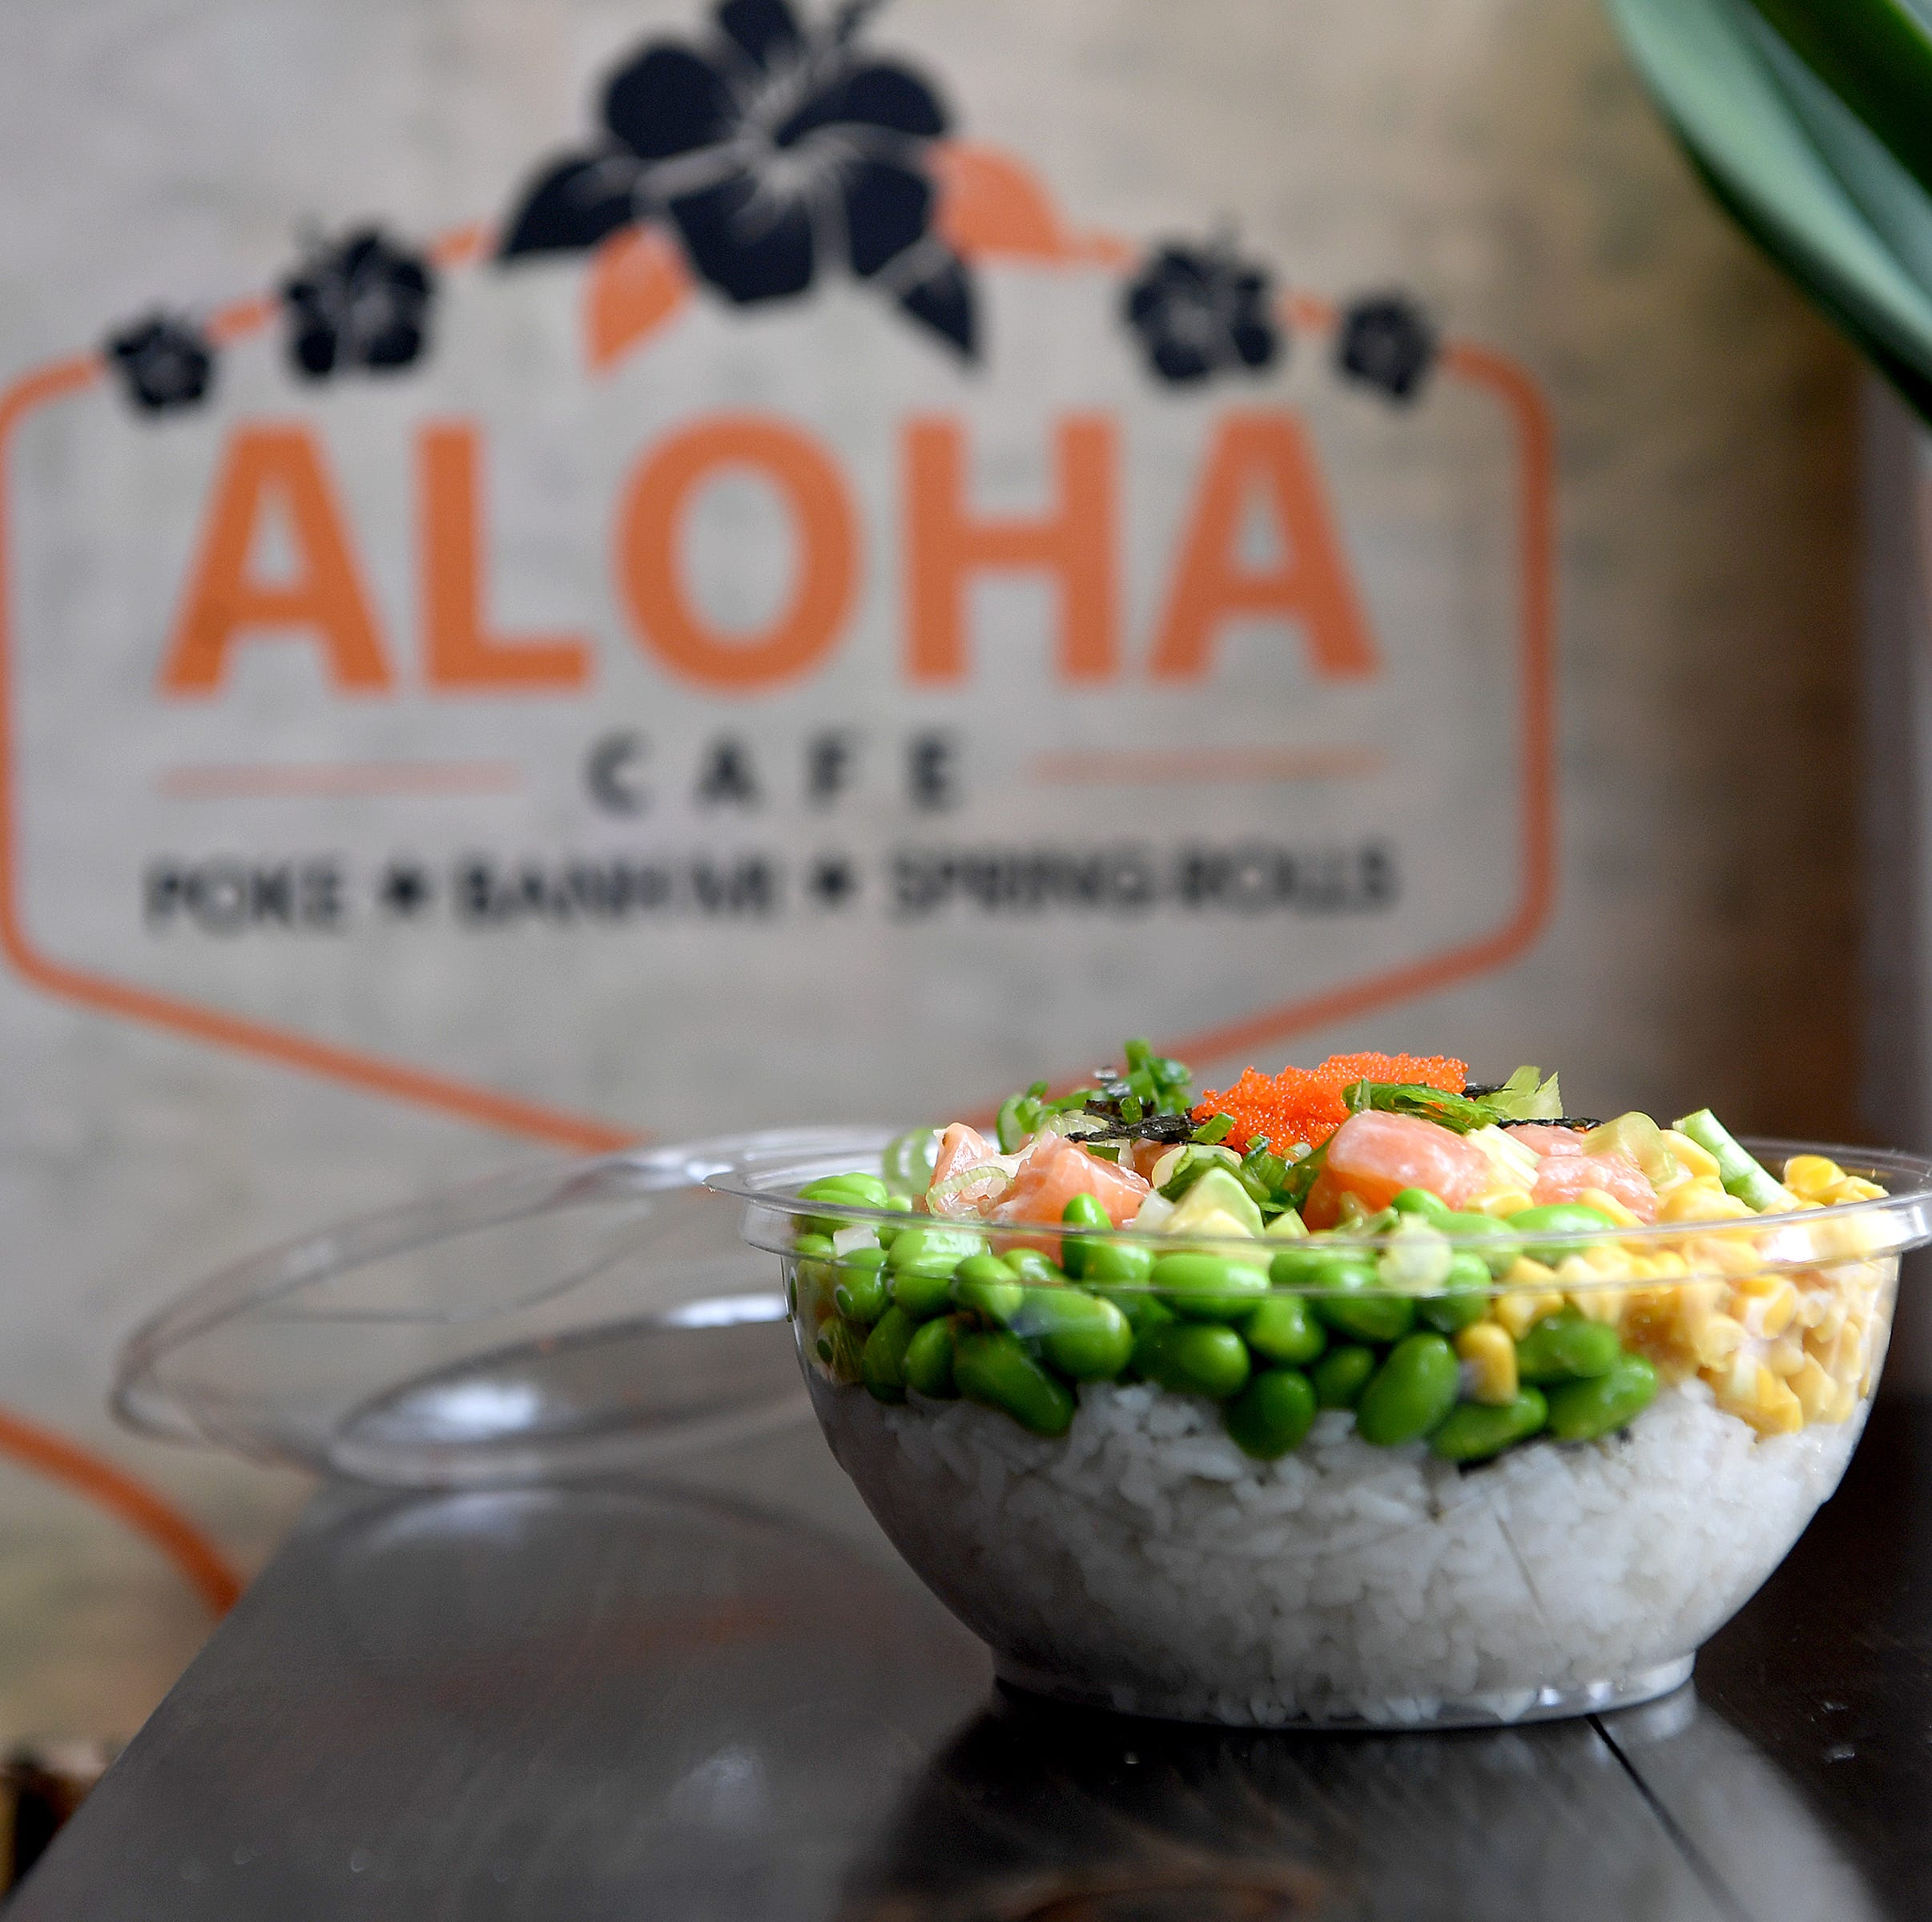 Dining review: Aloha Cafe serves poke, banh mi, in downtown Asheville